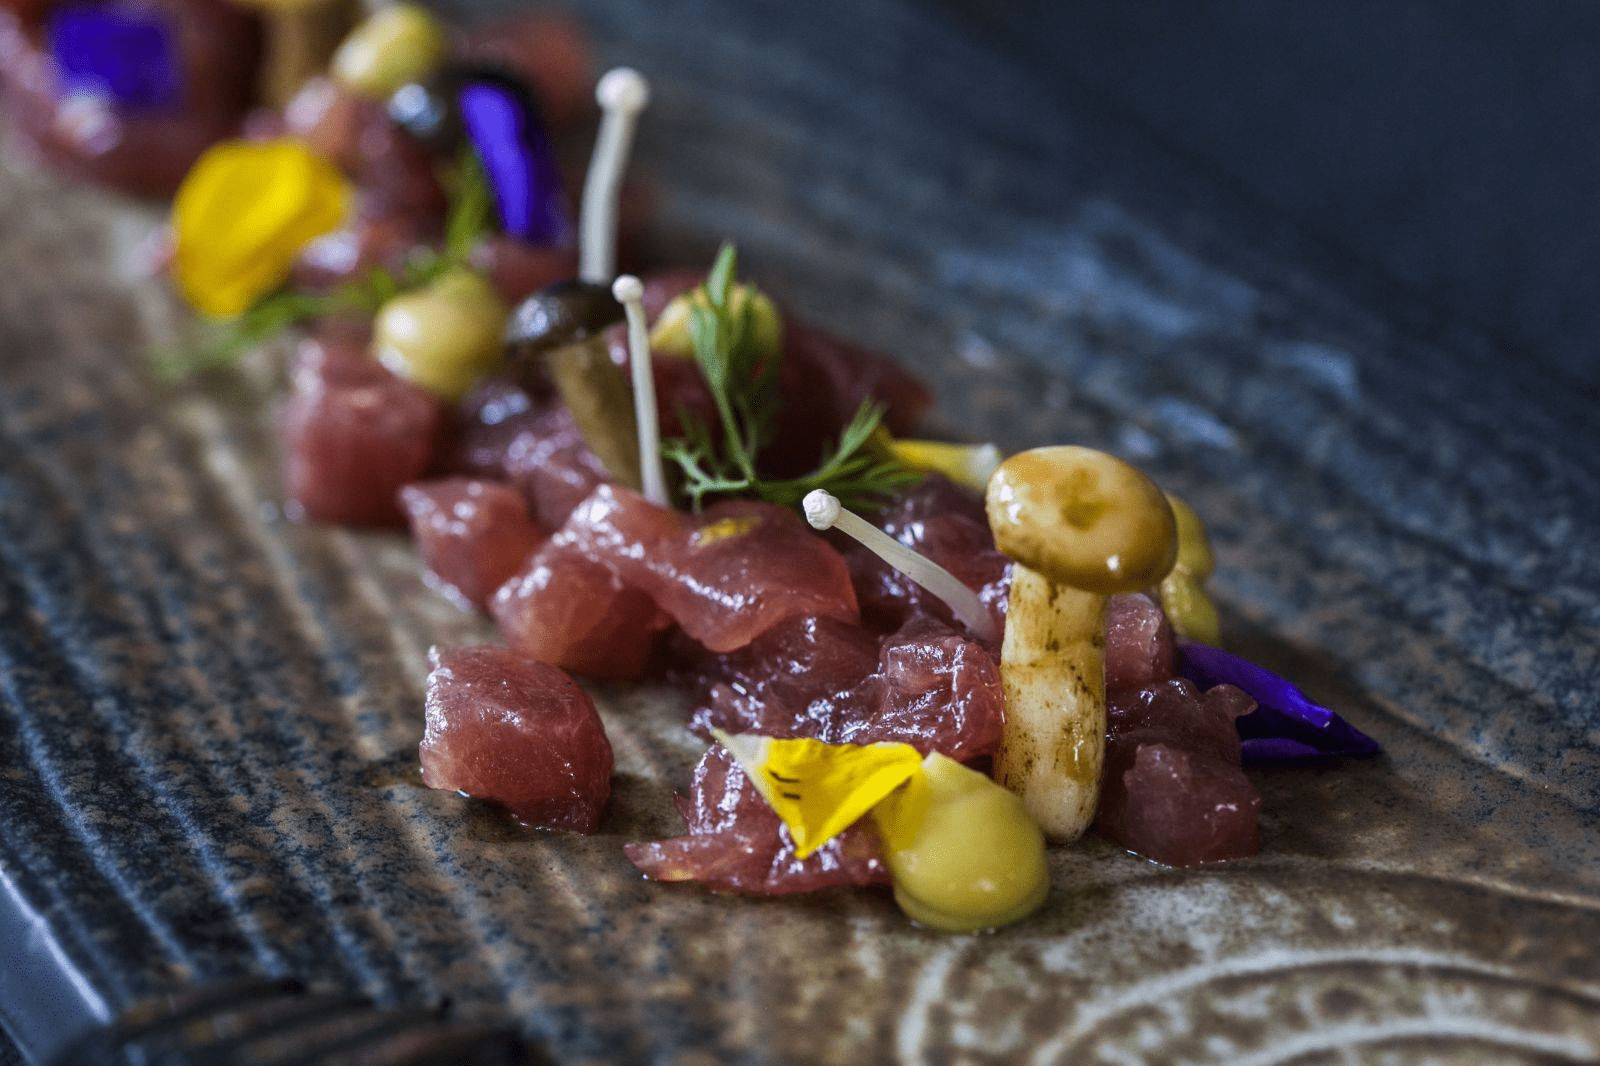 Feb 2018 cafes and restaurants (41) - Shard Restaurant & Bar Tuna Tartare with Soya Dressing and Mushrooms